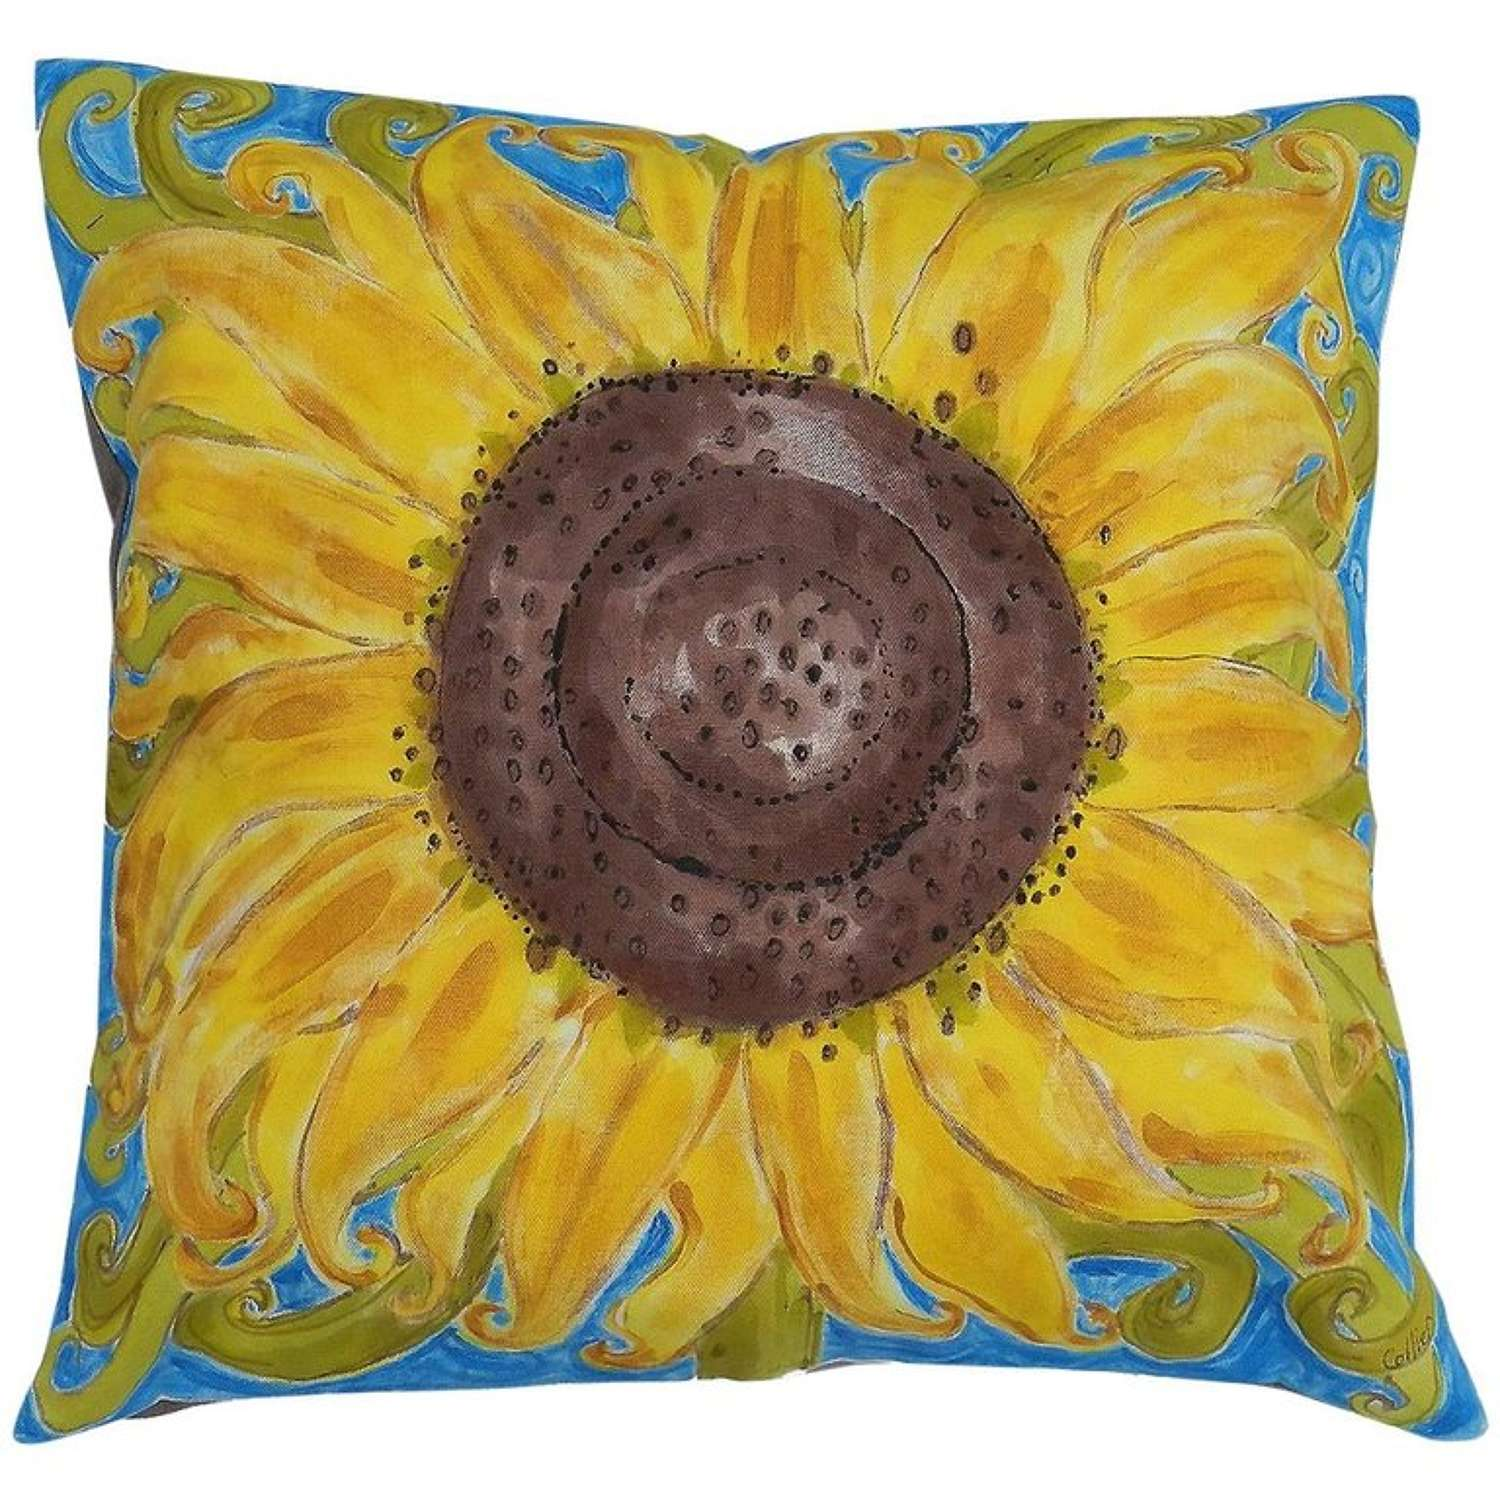 One of a Kind Pillow Hand-Painted Sunflower Unique Throw Cushion Artist Signed